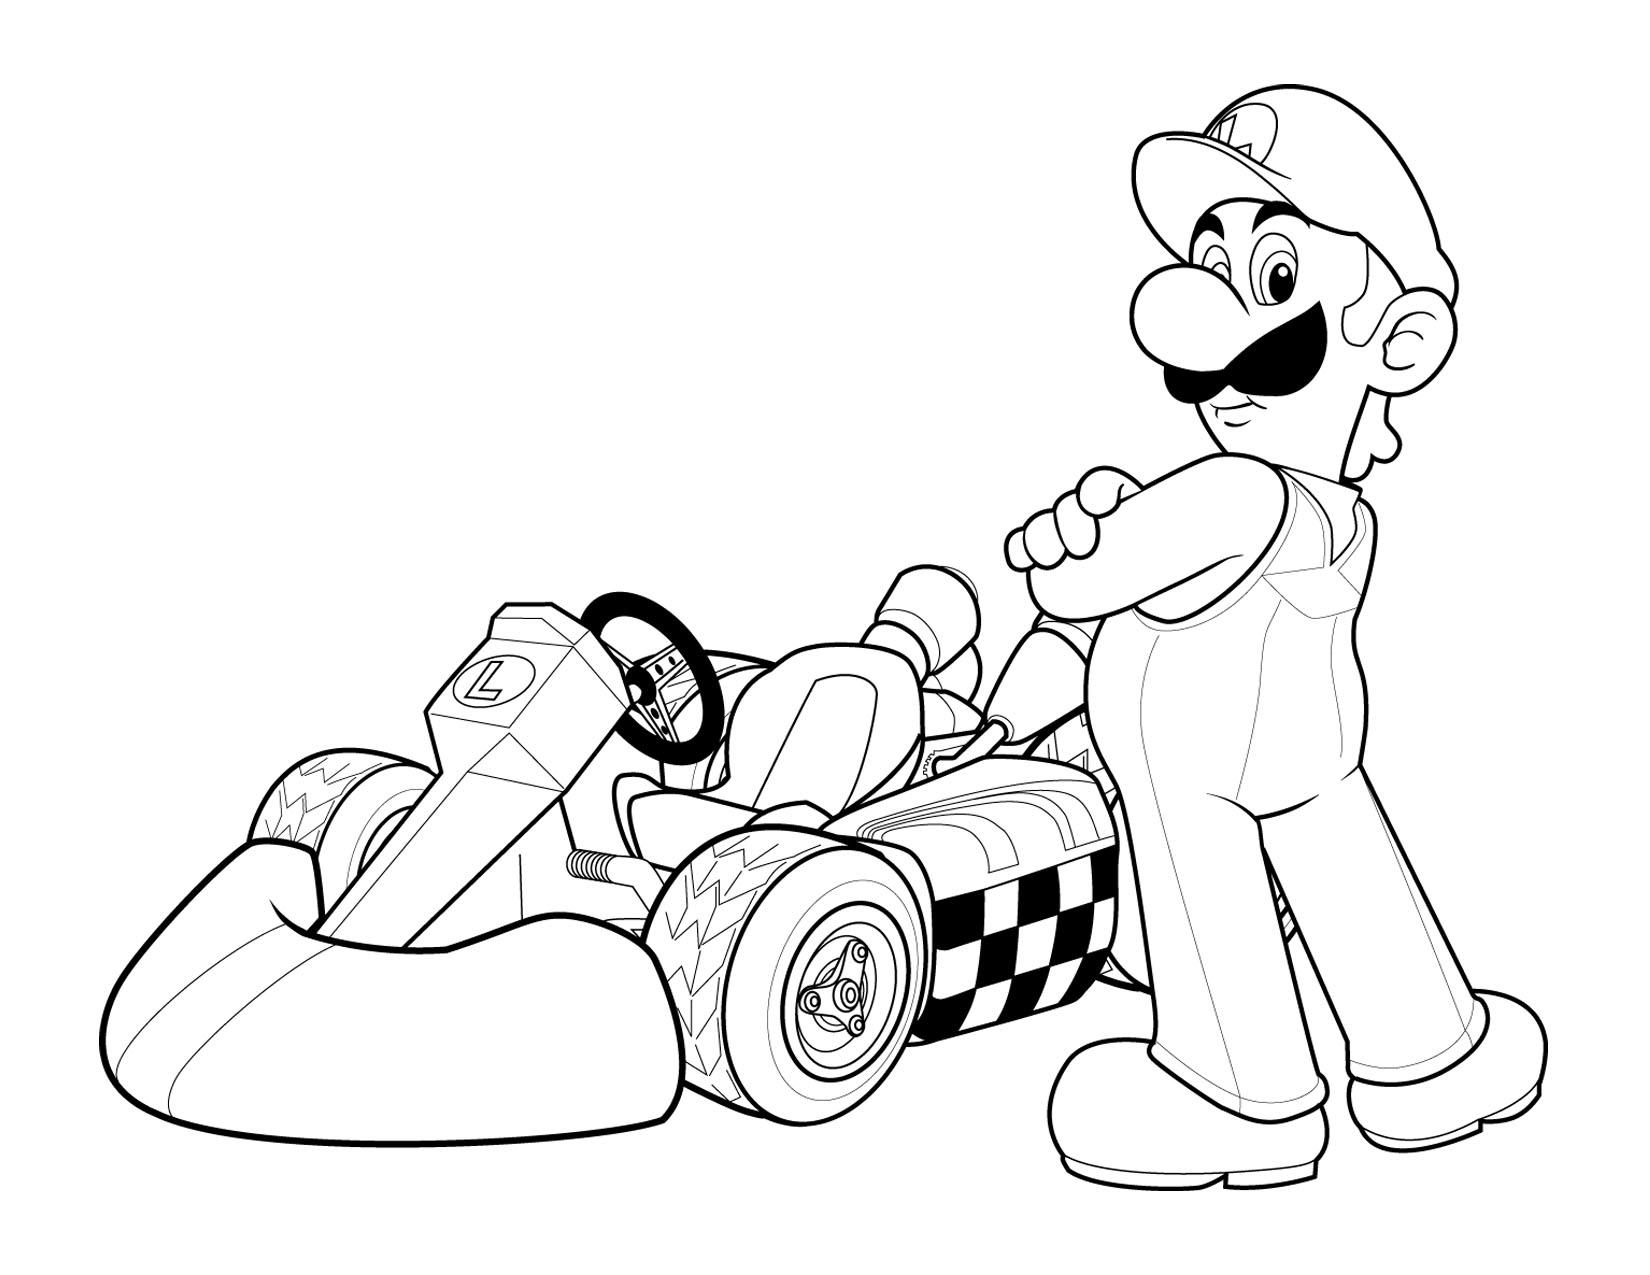 mario kart coloring pages - mario coloring pages